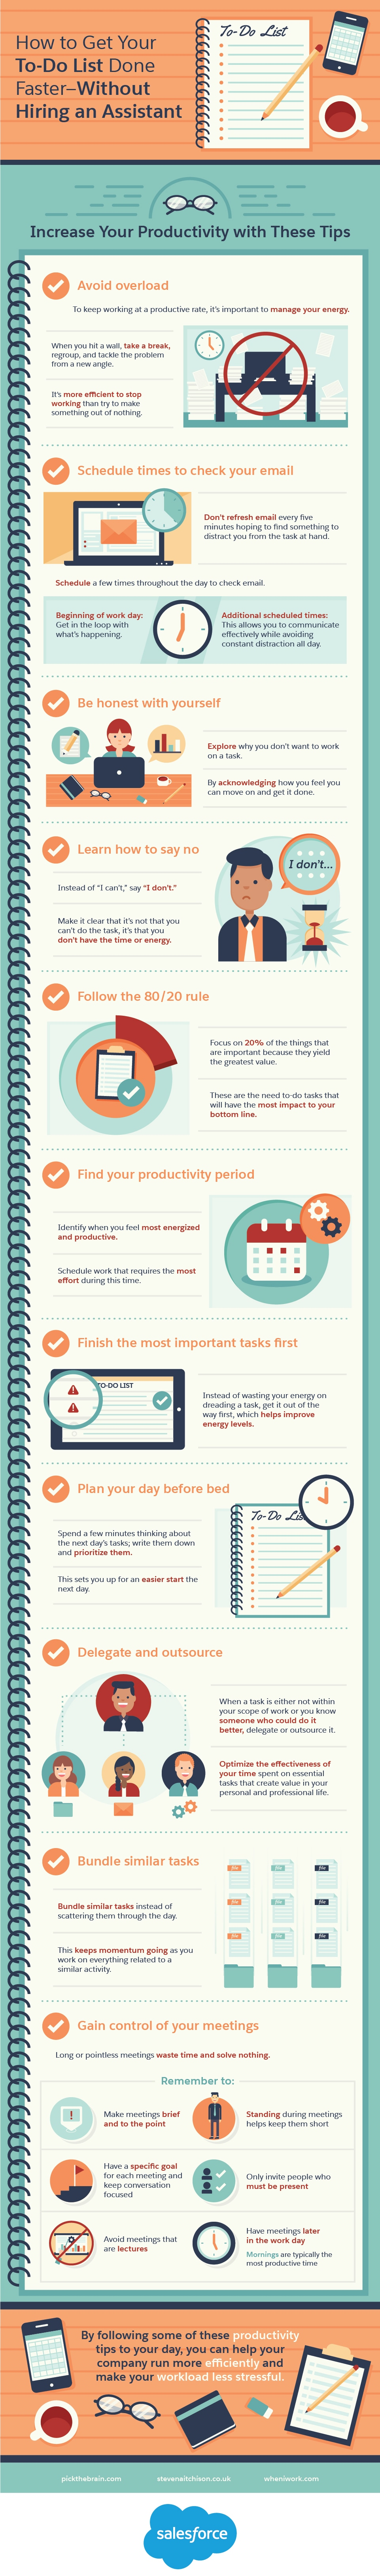 how-to-get-your-to-do-list-done-faster